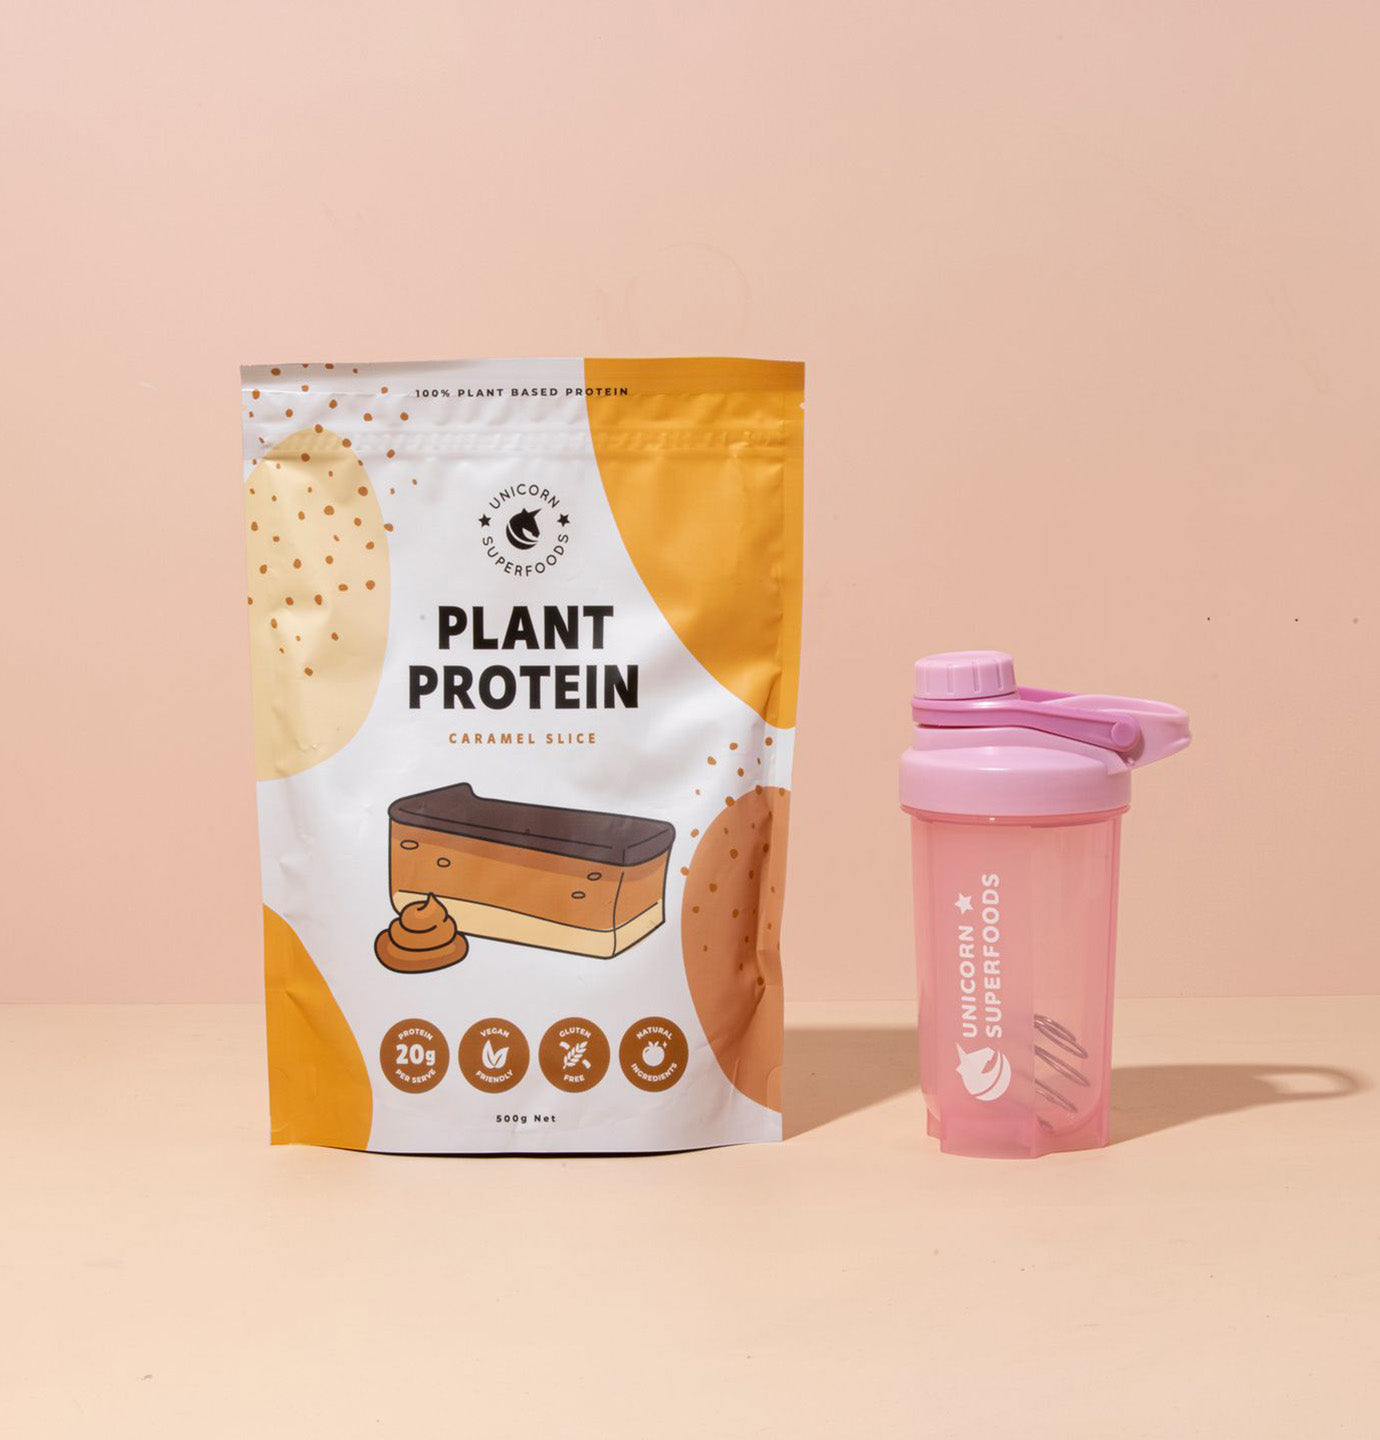 Caramel plant protein and shaker